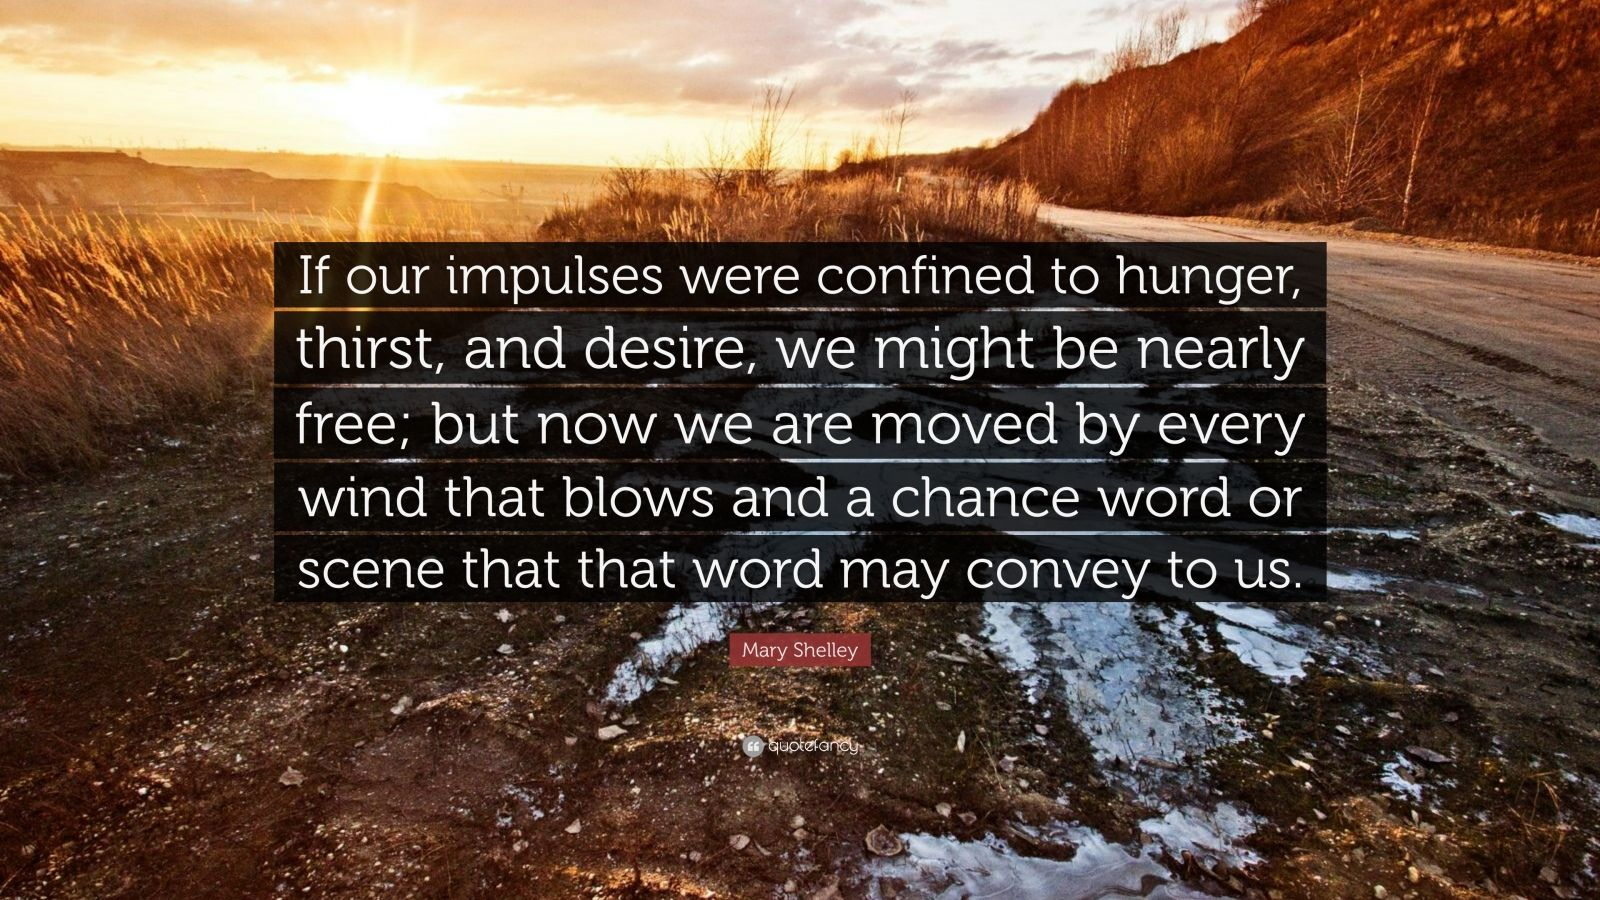 """Mary Shelley Quote: """"If our impulses were confined to hunger, thirst, and desire, we might be nearly free; but now we are moved by every wind that blows and a chance word or scene that that word may convey to us."""""""